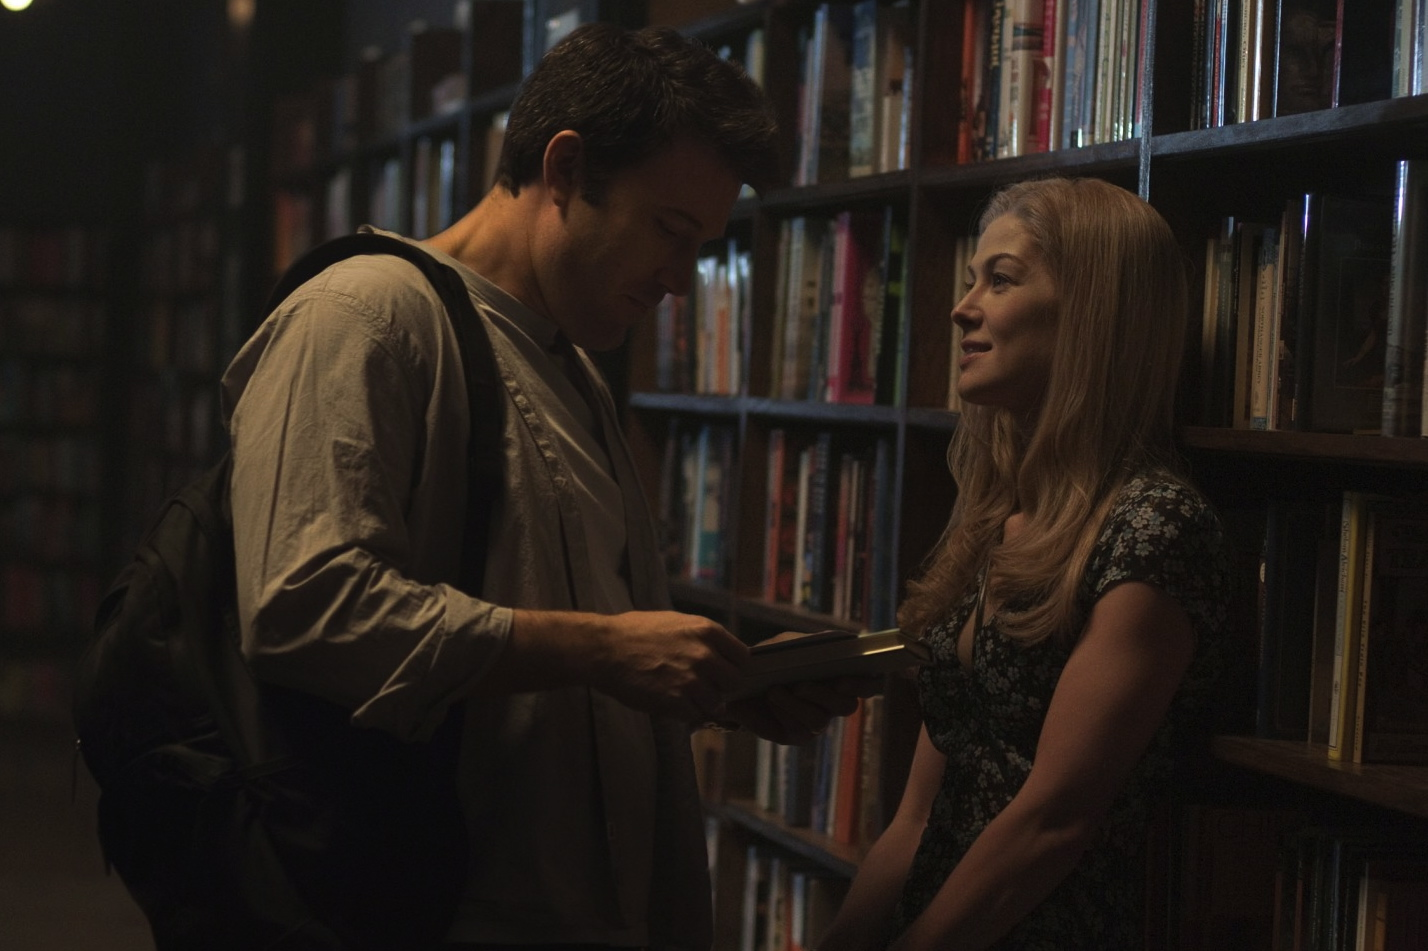 If You Seek Amy: Gone Girl Reviewed